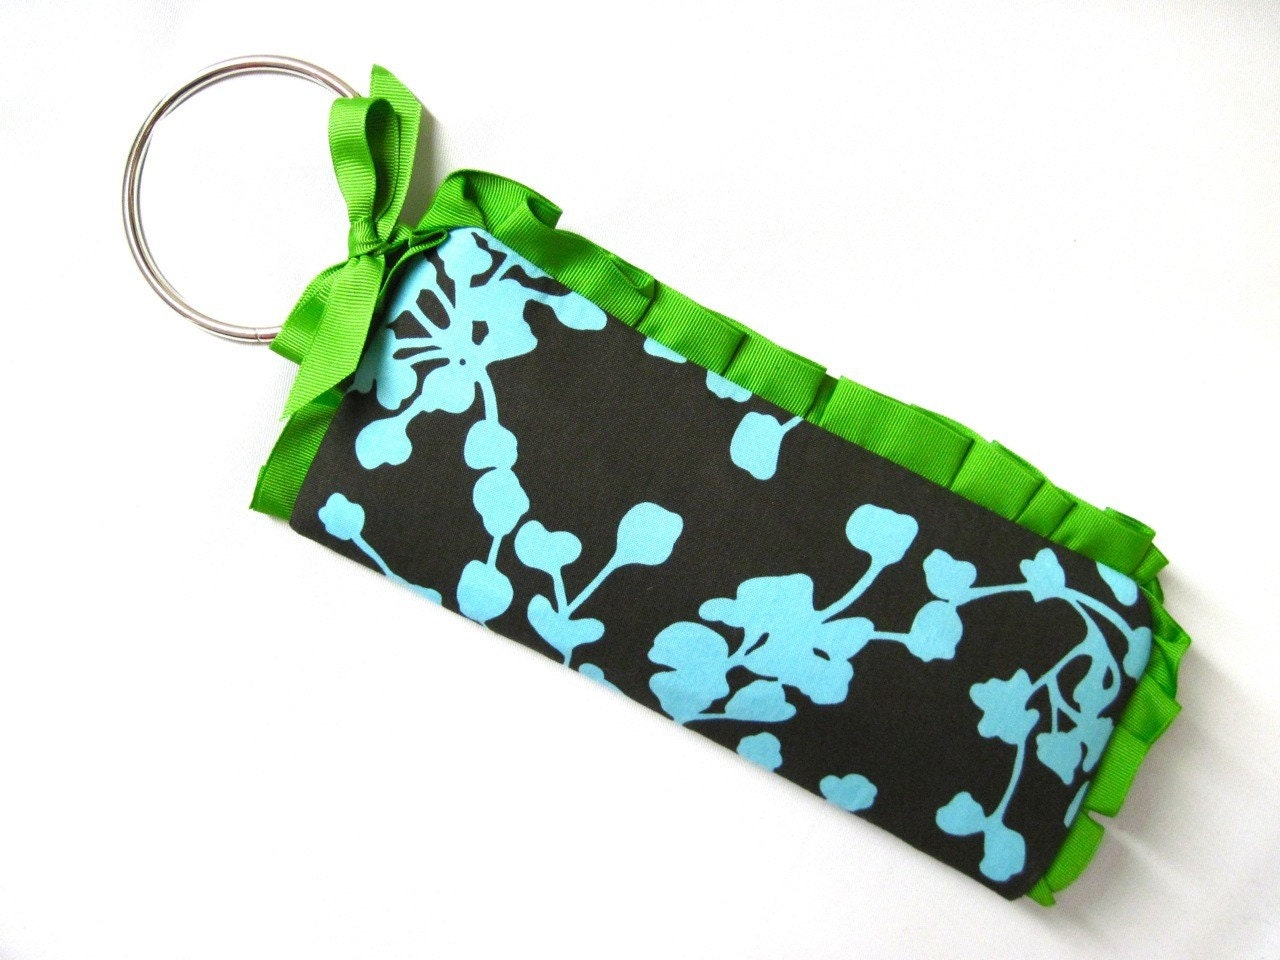 THE BANGLE WRISTLET in turquoise and green